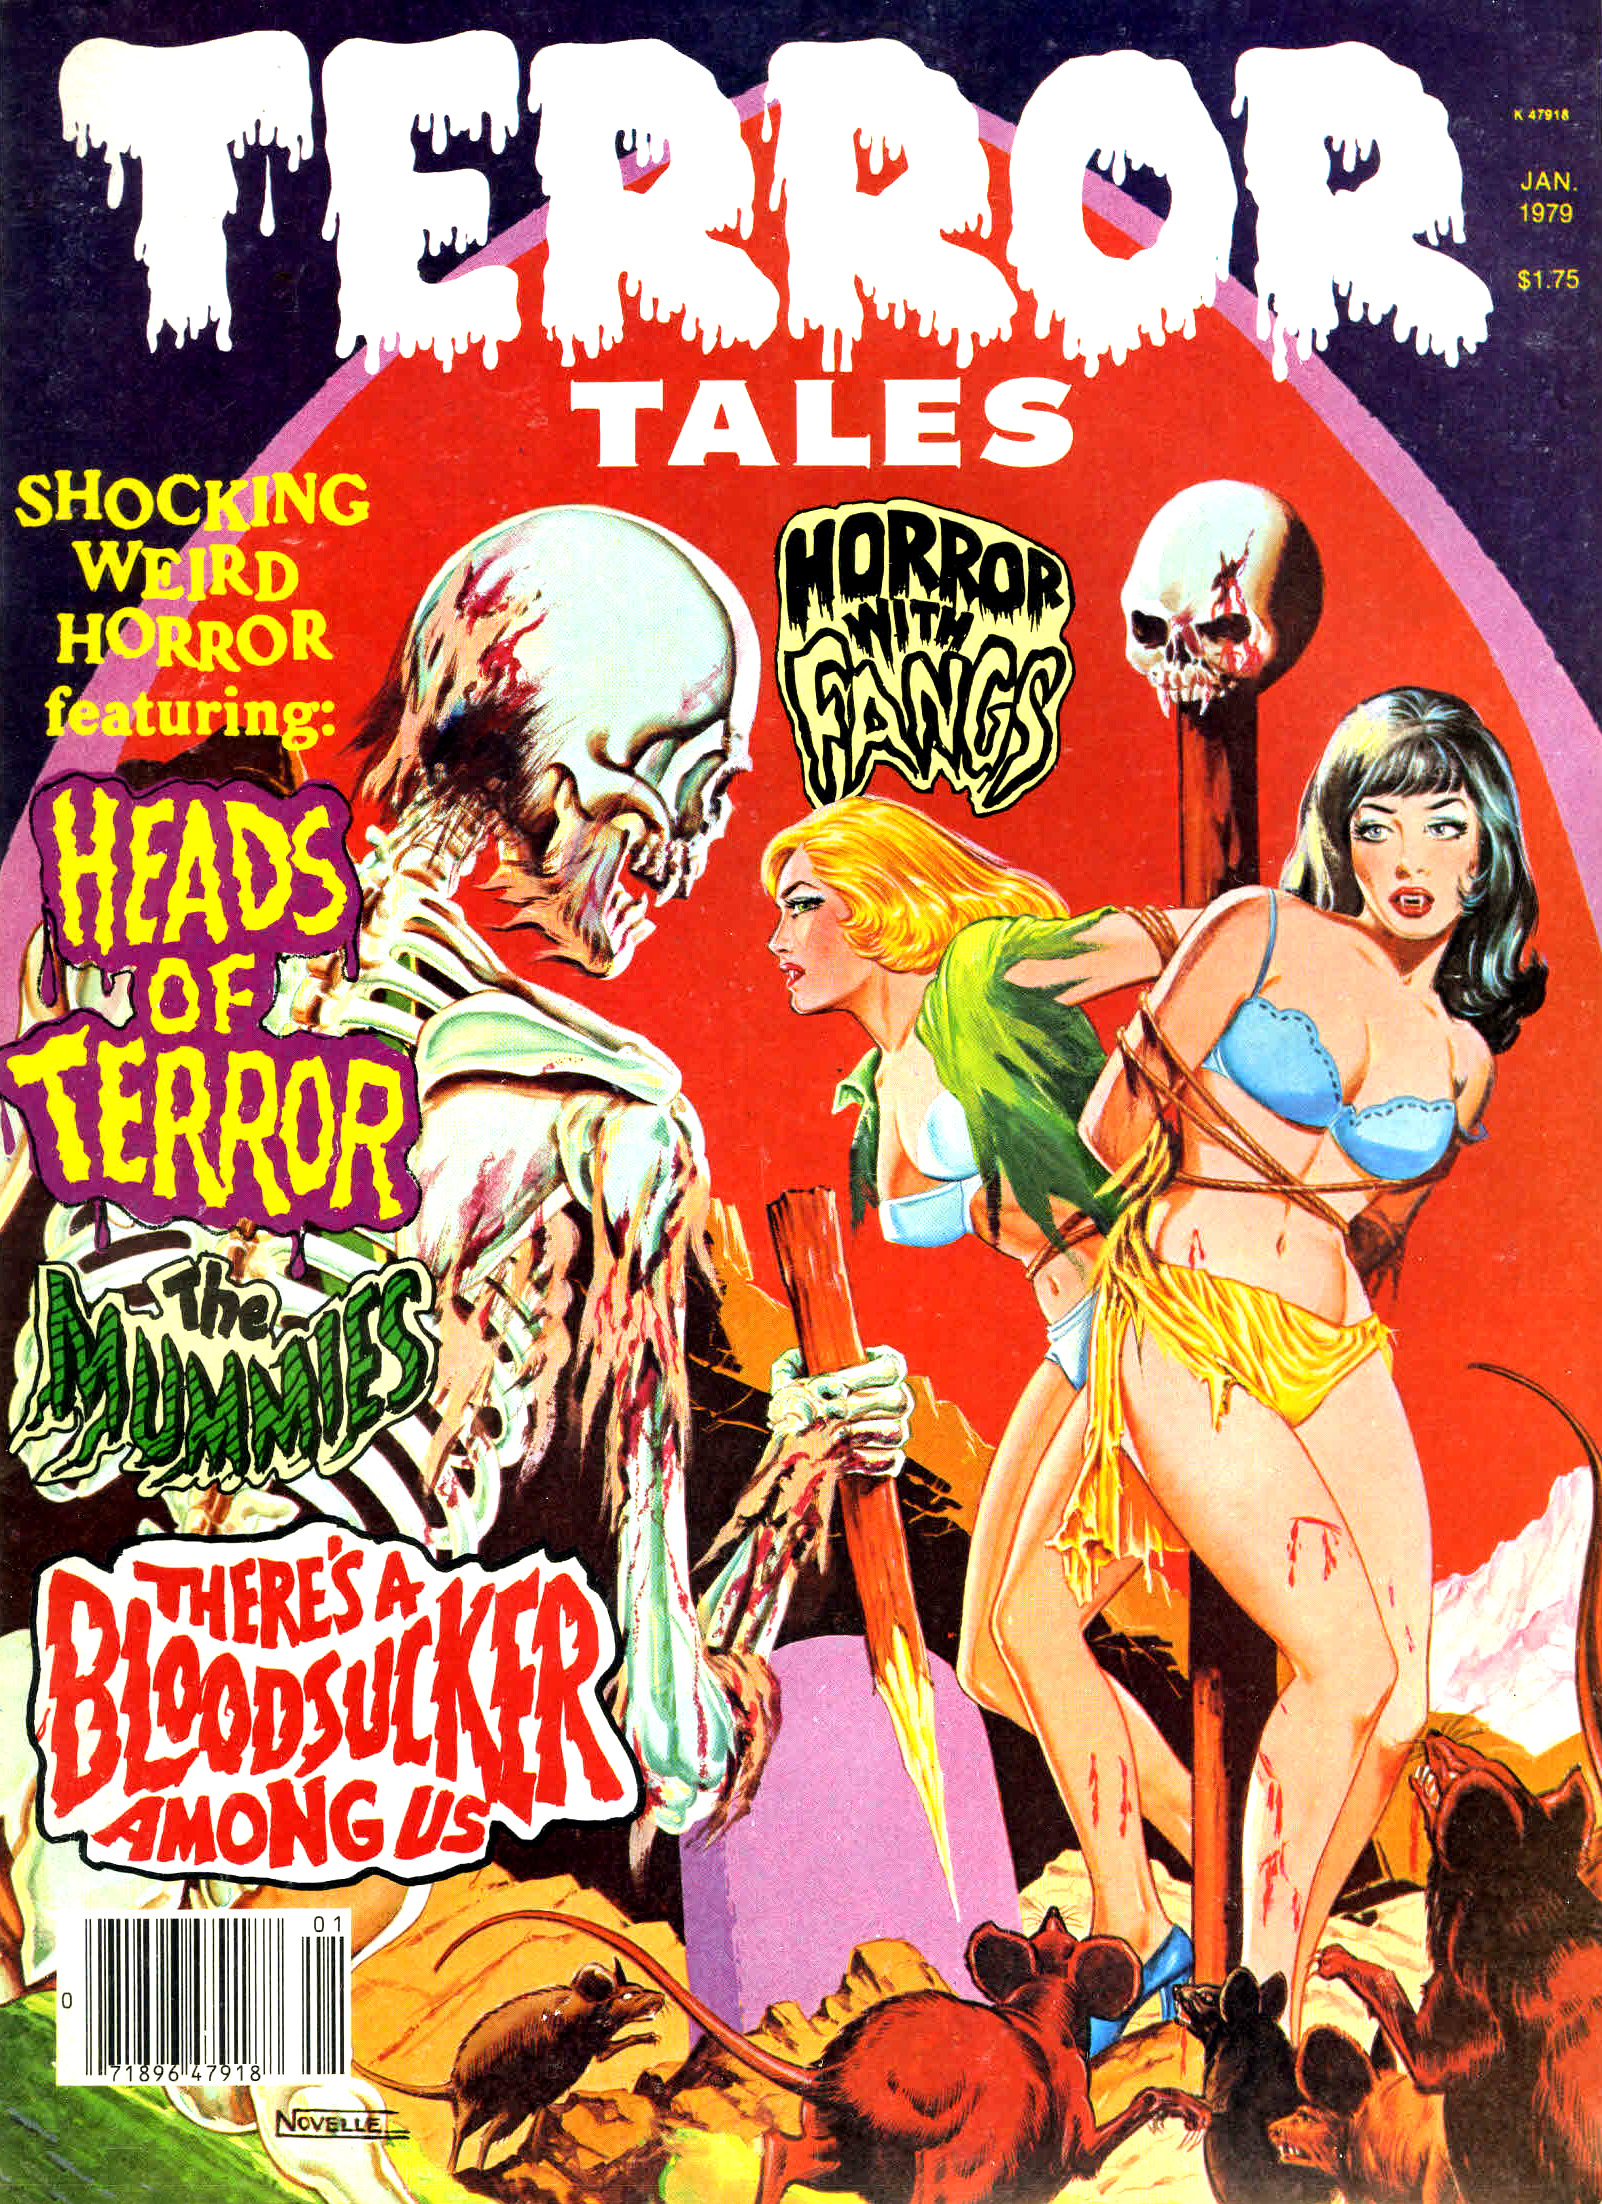 Terror Tales Vol. 10 #1 (Eerie Publications, 1979)